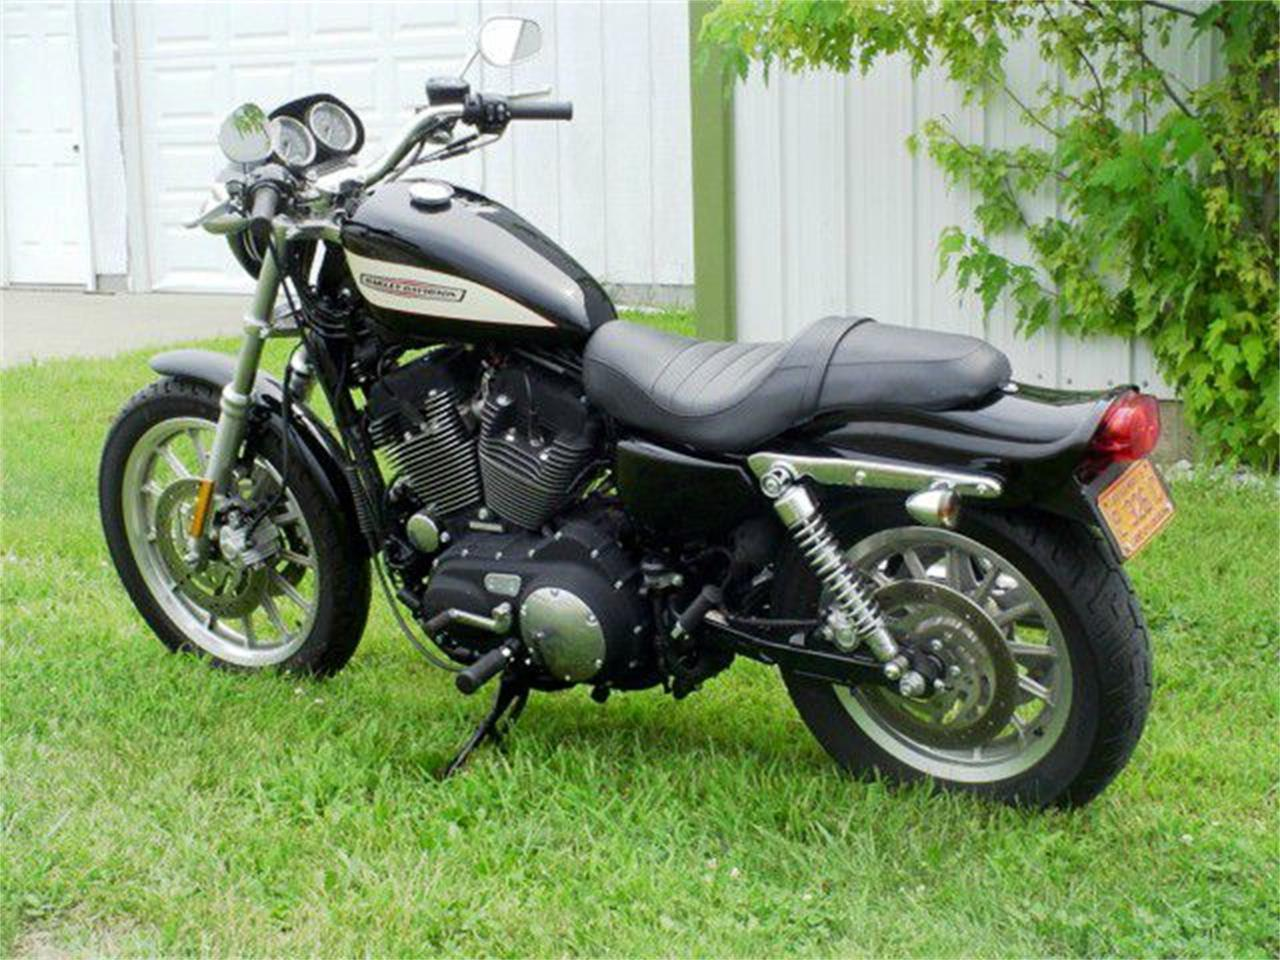 Large Picture of 2007 Harley-Davidson Sportster located in Illinois - Q5AM